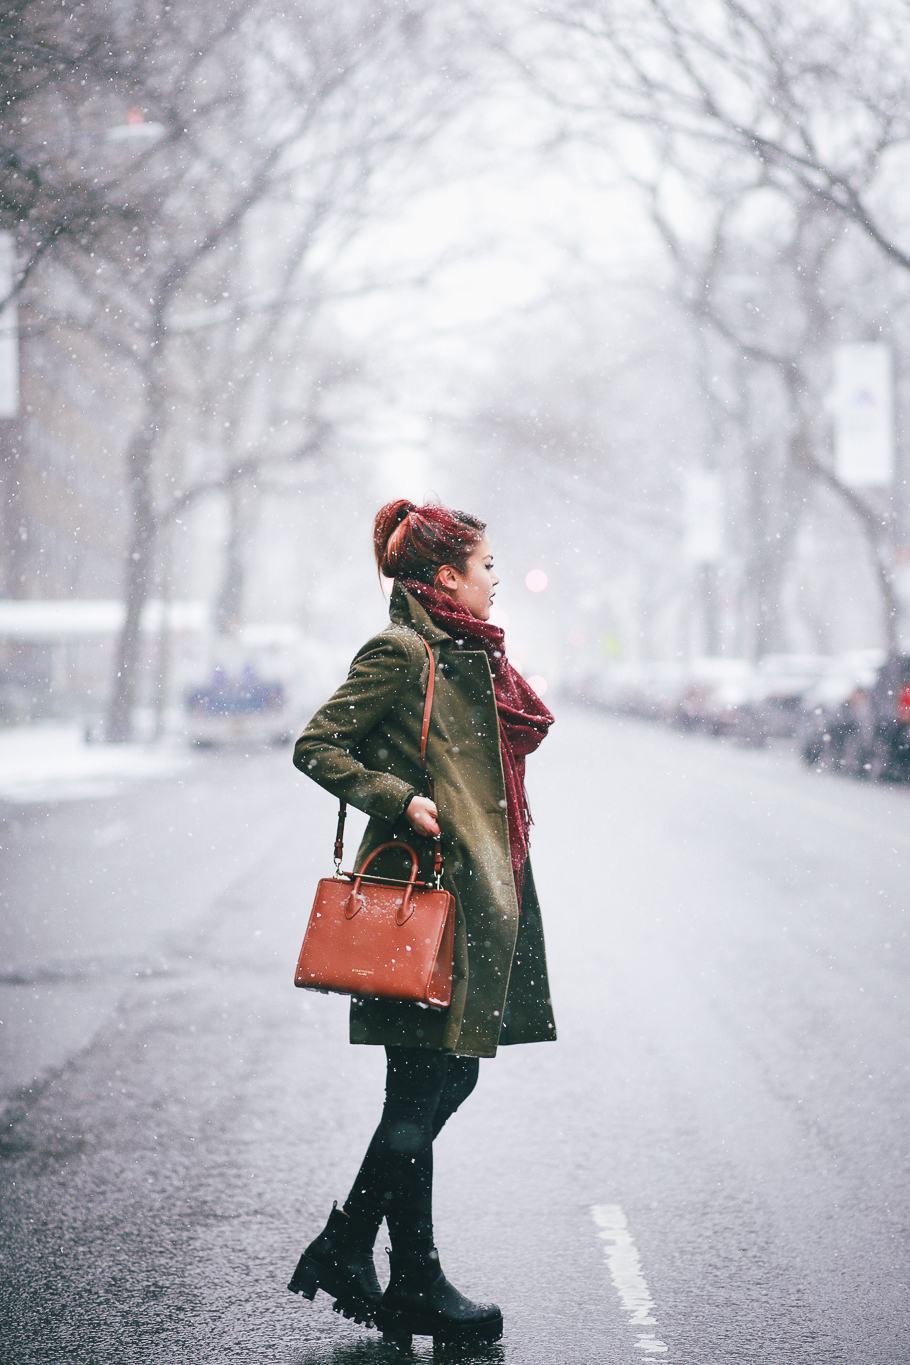 Le Happy wearing green coat in Central Park